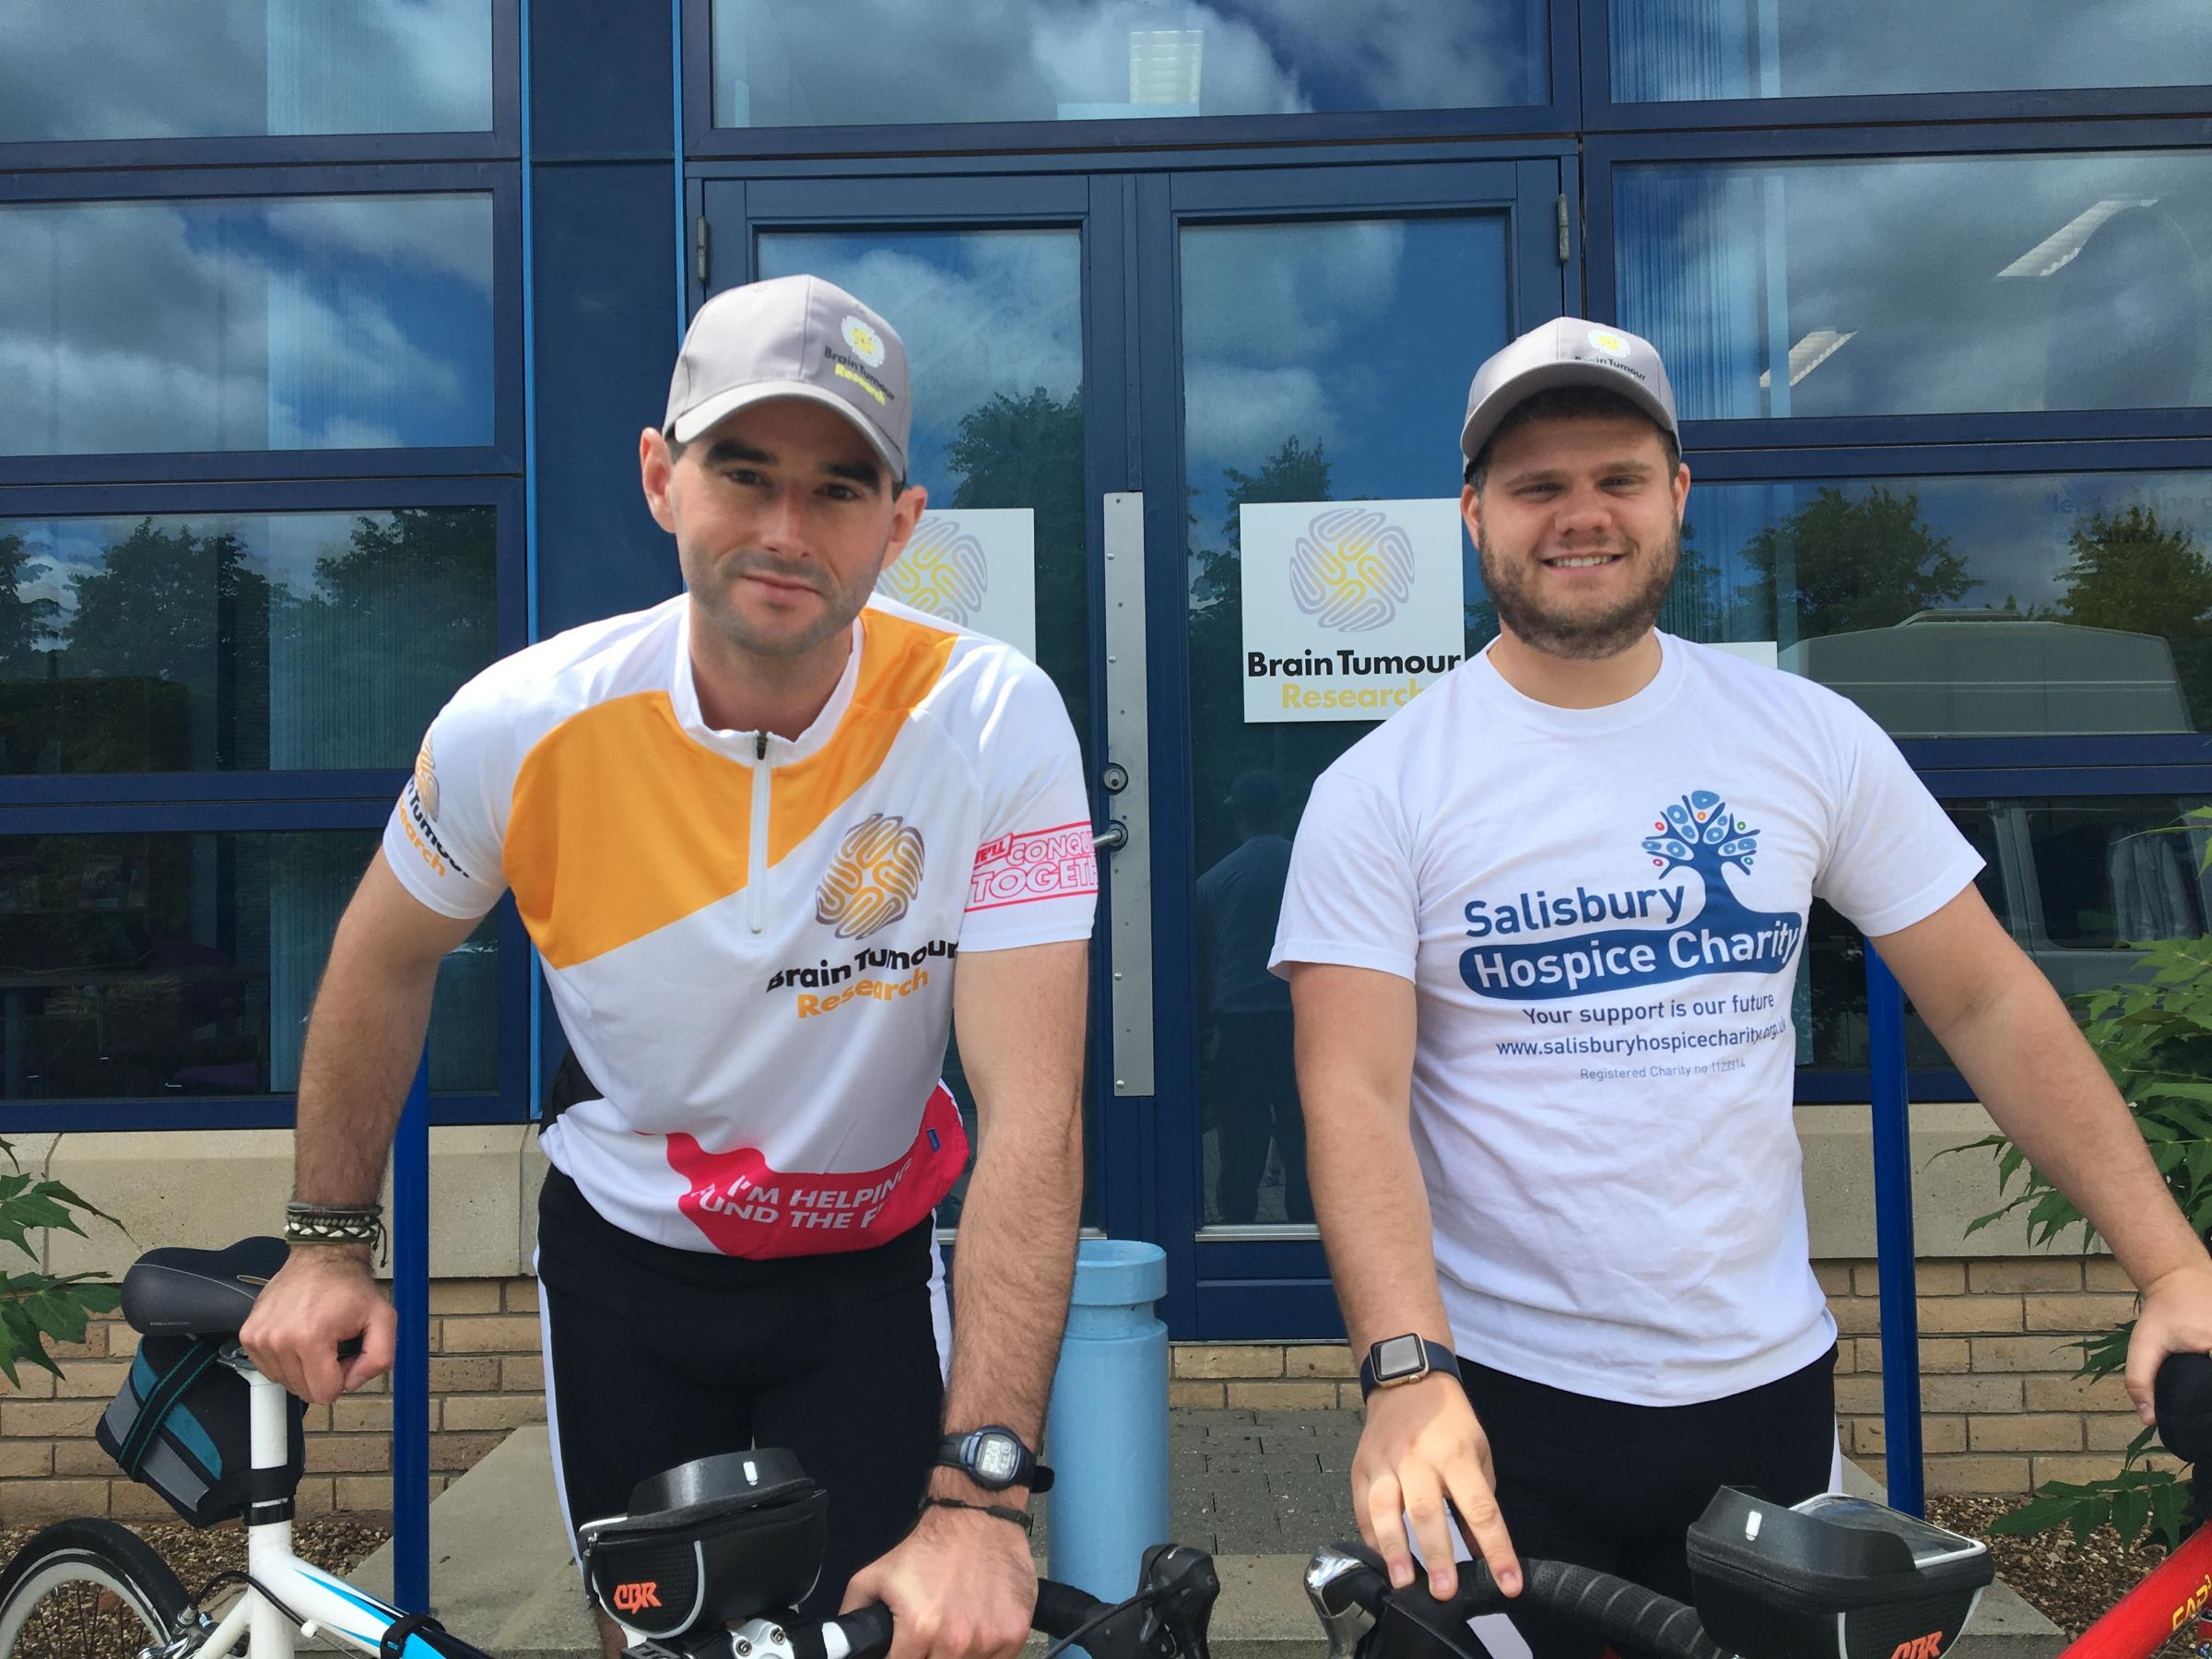 Friends cycle 400 miles to raise funds after losing family members to brain tumours